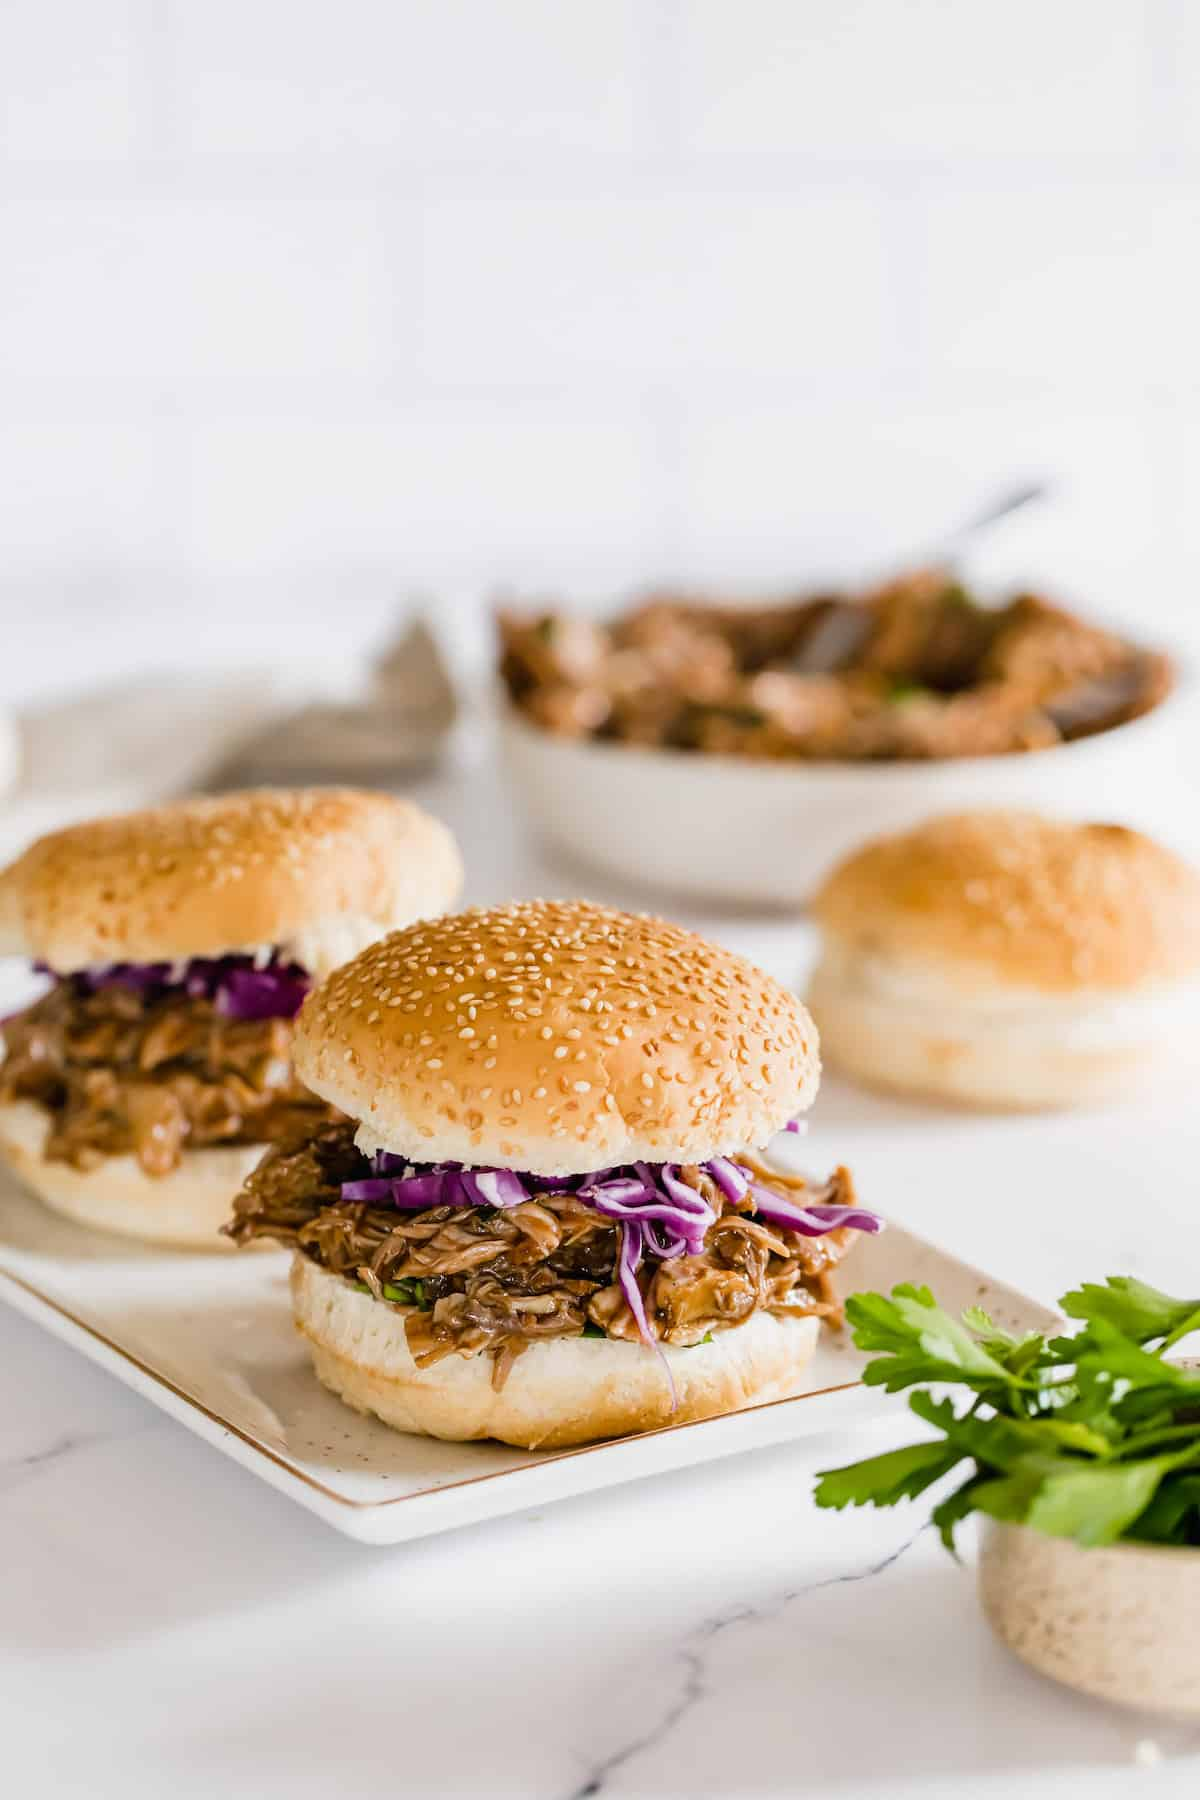 A Platter Holding Two Pulled Pork Sandwiches with a Bowl of Pulled Pork and a Bun in the Background